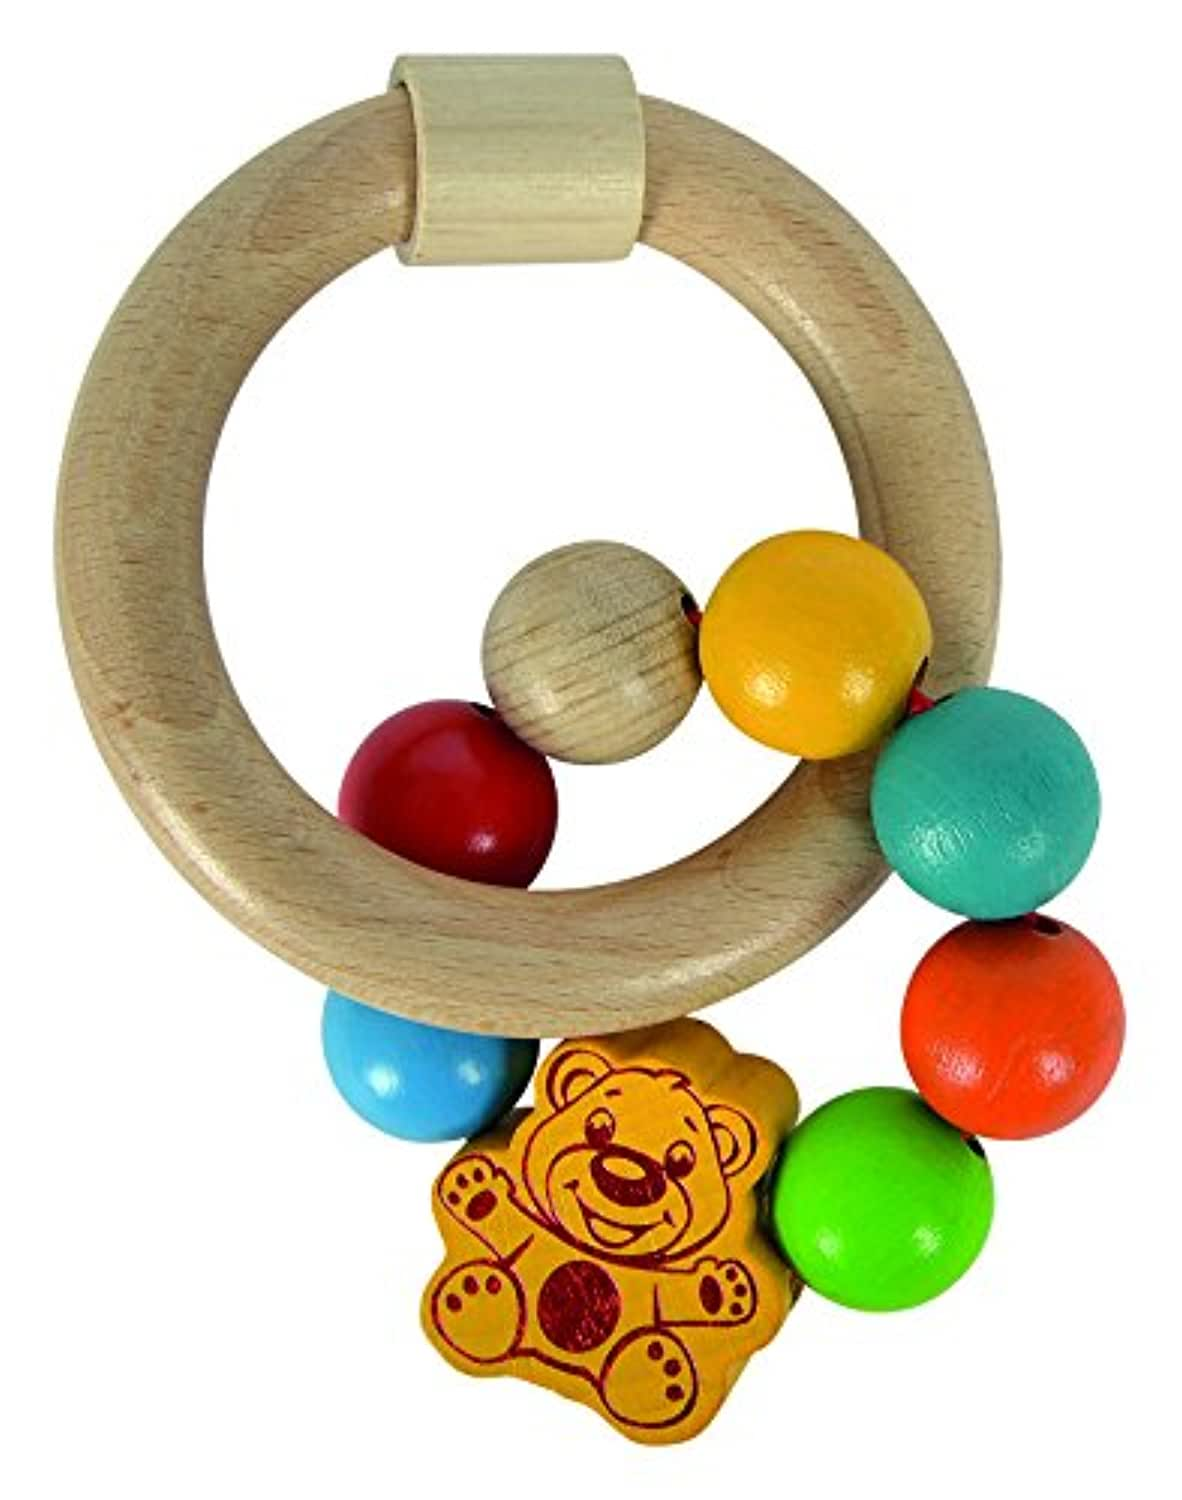 Simba Baby Teether, 2 designs, Heros 100017063 Bright - Bear Design - Beechwood - Clutching Toy - Made in Germany